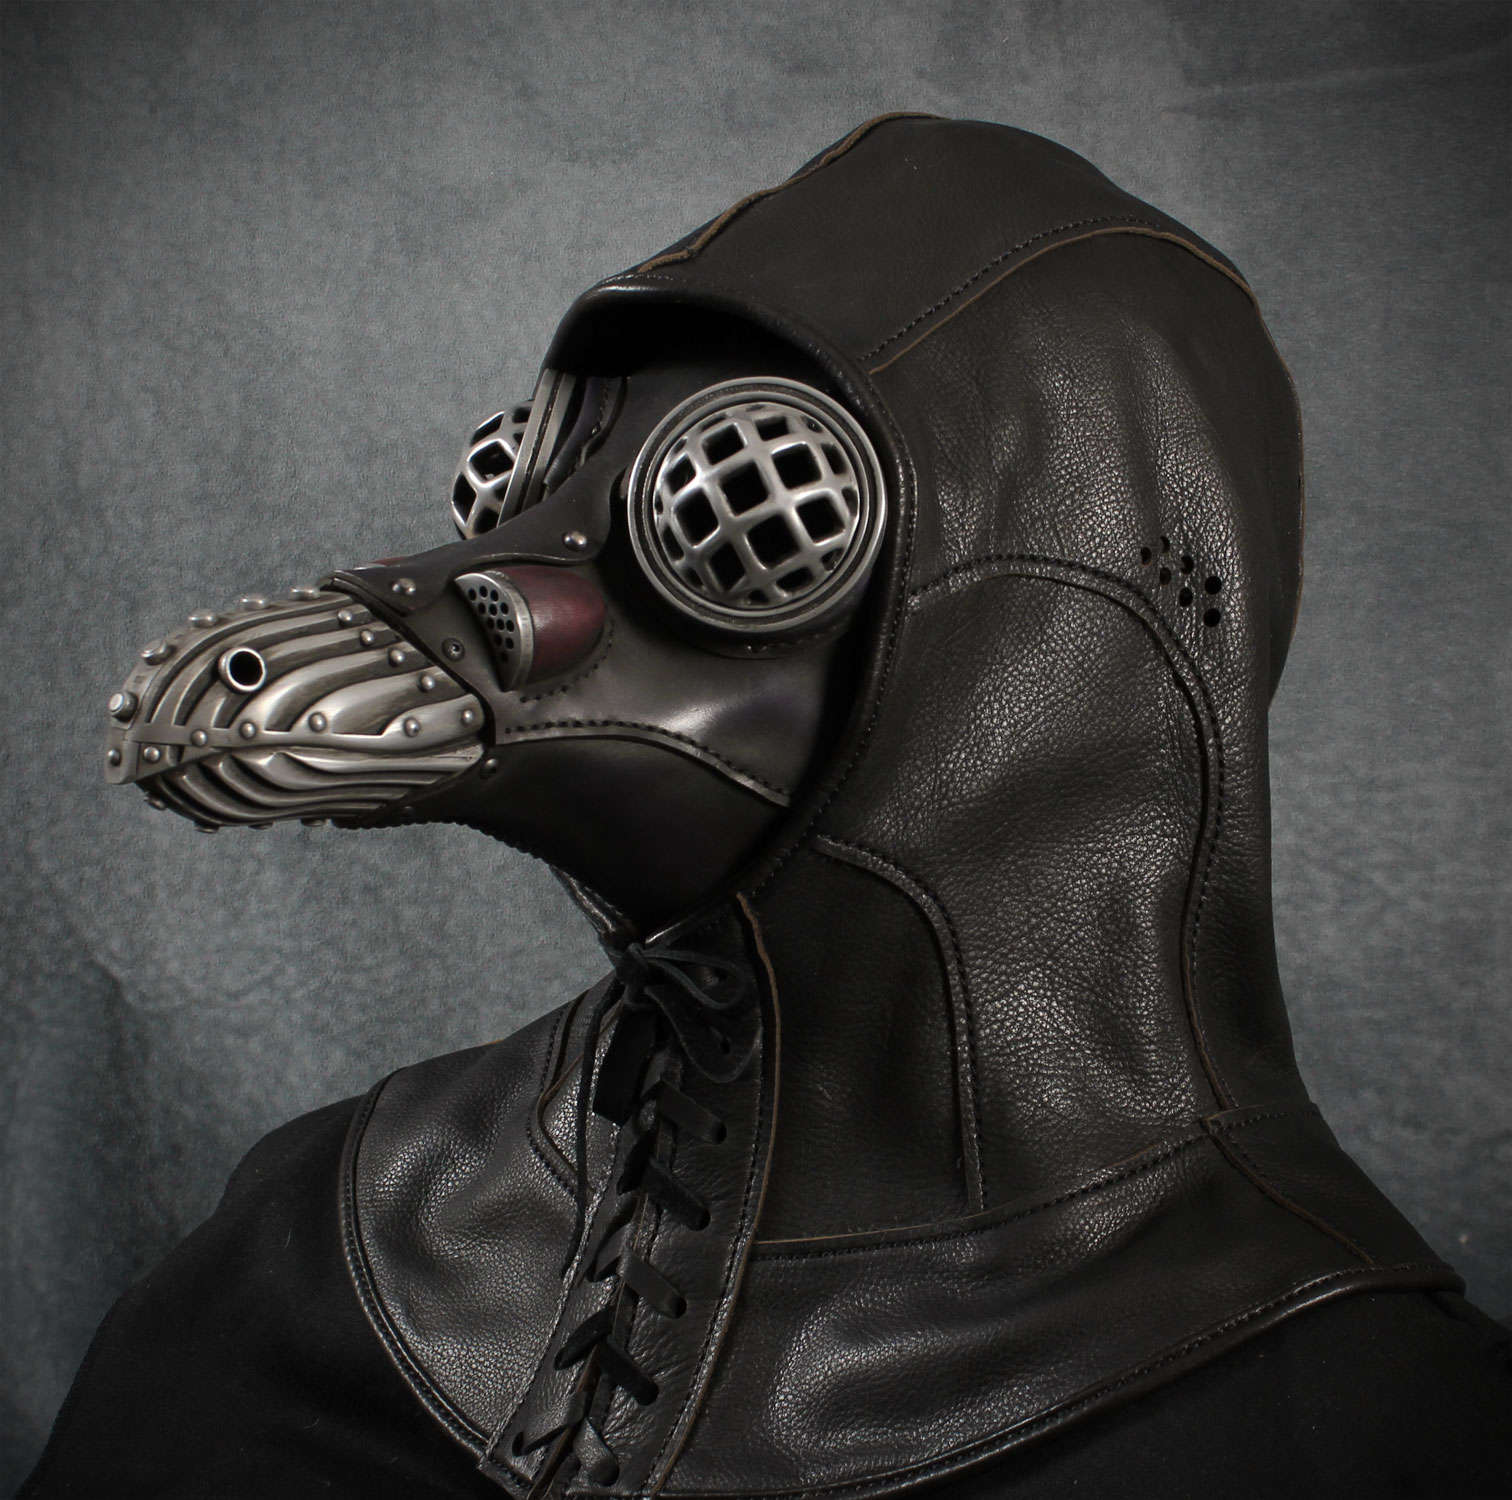 Miasma with leather hood